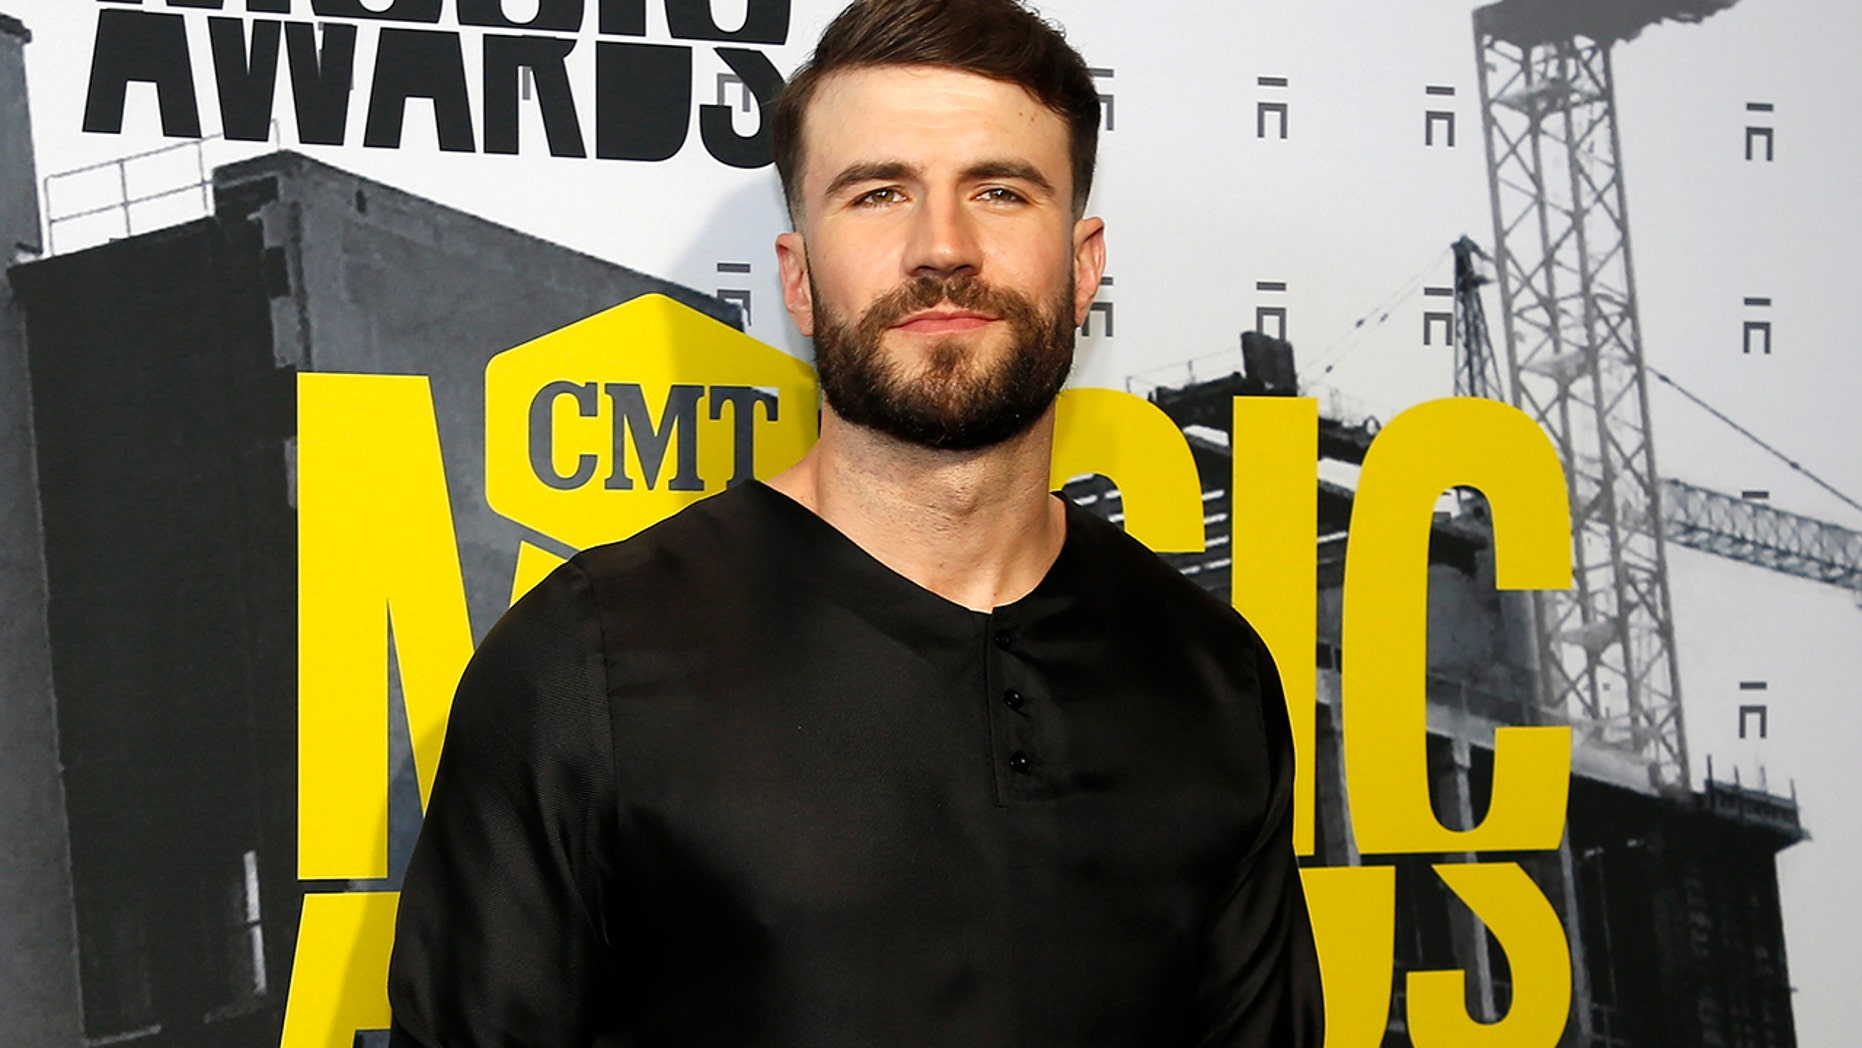 Sam Hunt attends the 2017 CMT Music Awards  in Nashville, Tennessee, on June 6, 2017.